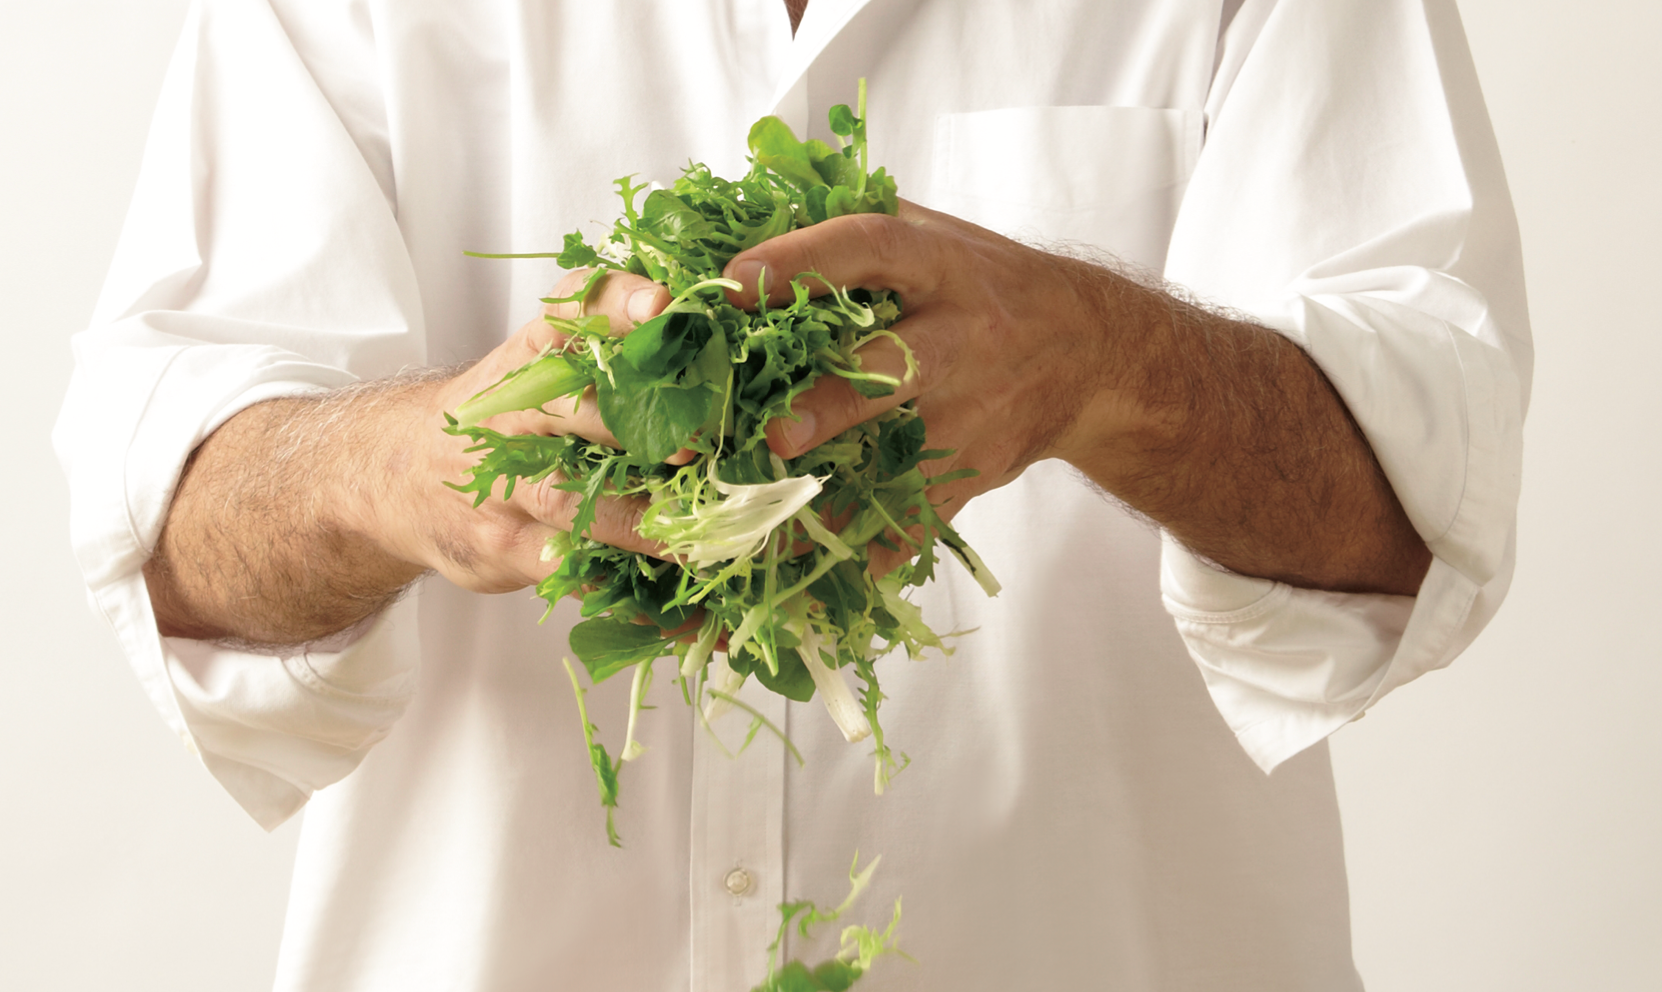 Closeup of the bare hands of a person in a white chef's coat holding salad greens.